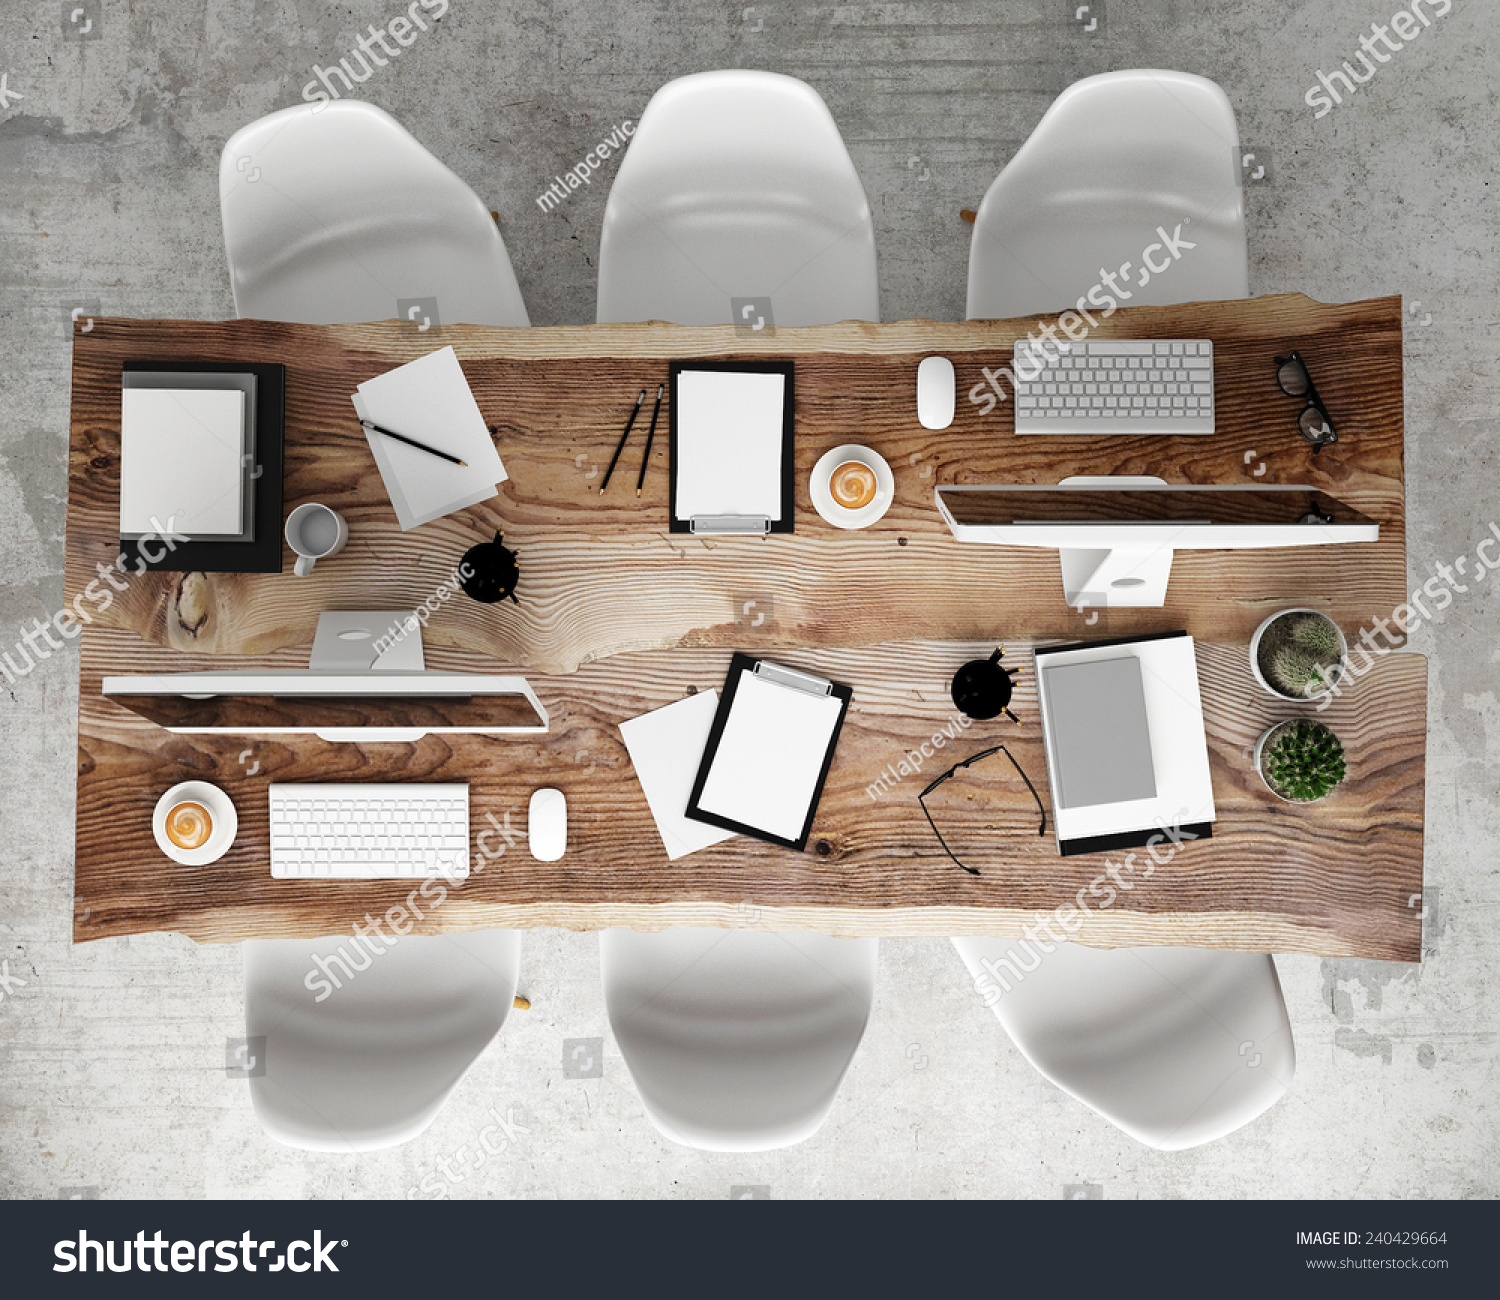 Mock meeting conference table office accessories stock for Meeting table design 3d